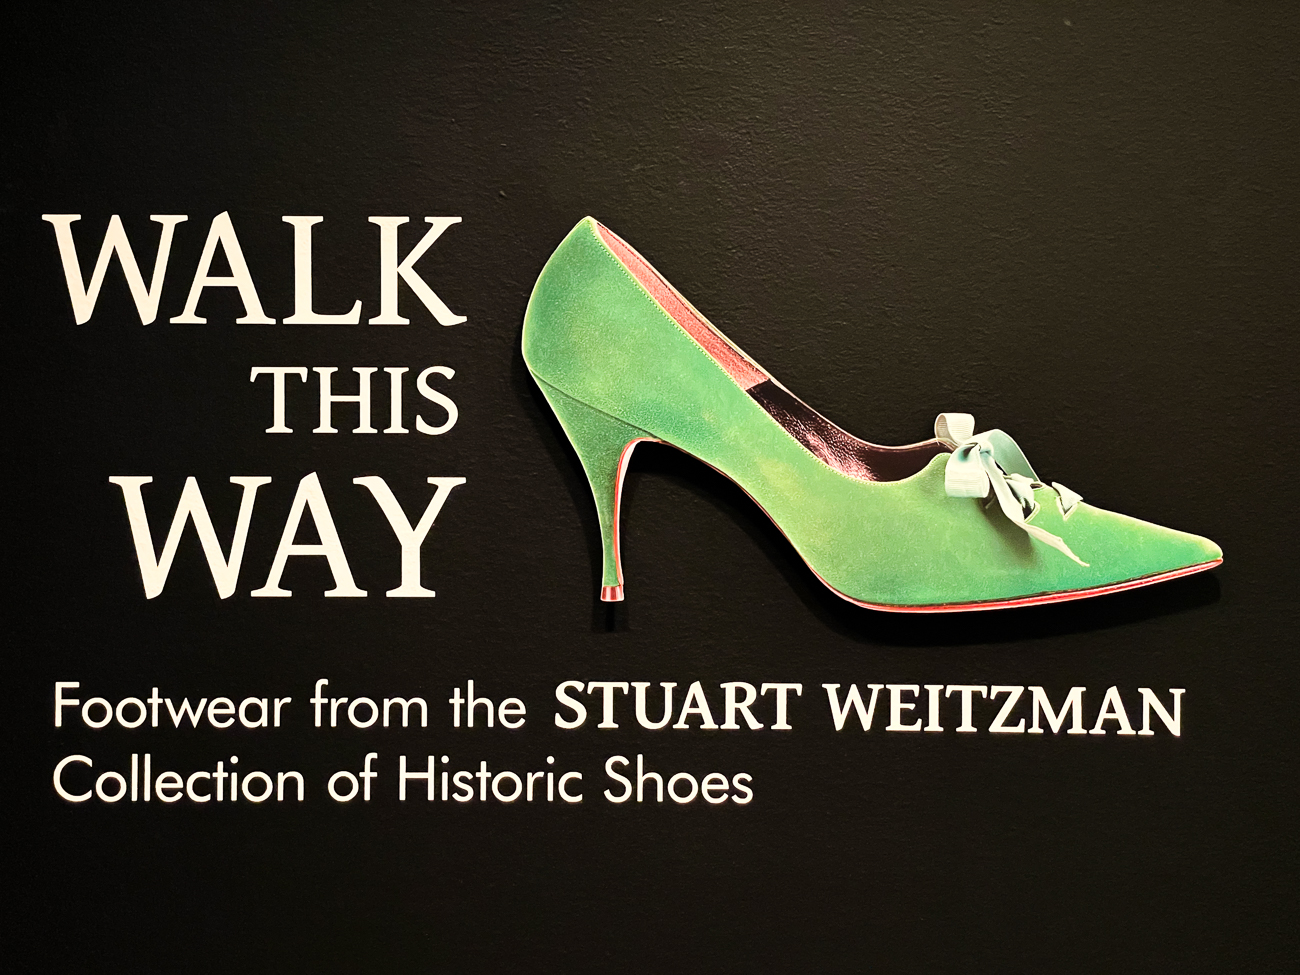 "Walk This Way is on view February 27–June 6, 2021 in the Fifth Third Gallery. For more information and to plan your visit, check the{&nbsp;}<a  href=""https://sinclairstoryline.com/www.taftmuseum.org/exhibitions/walkthisway"" target=""_blank"" title=""www.taftmuseum.org/exhibitions/walkthisway"">website</a>. / Image: Phil Armstrong, Cincinnati Refined // Published: 3.1.21"